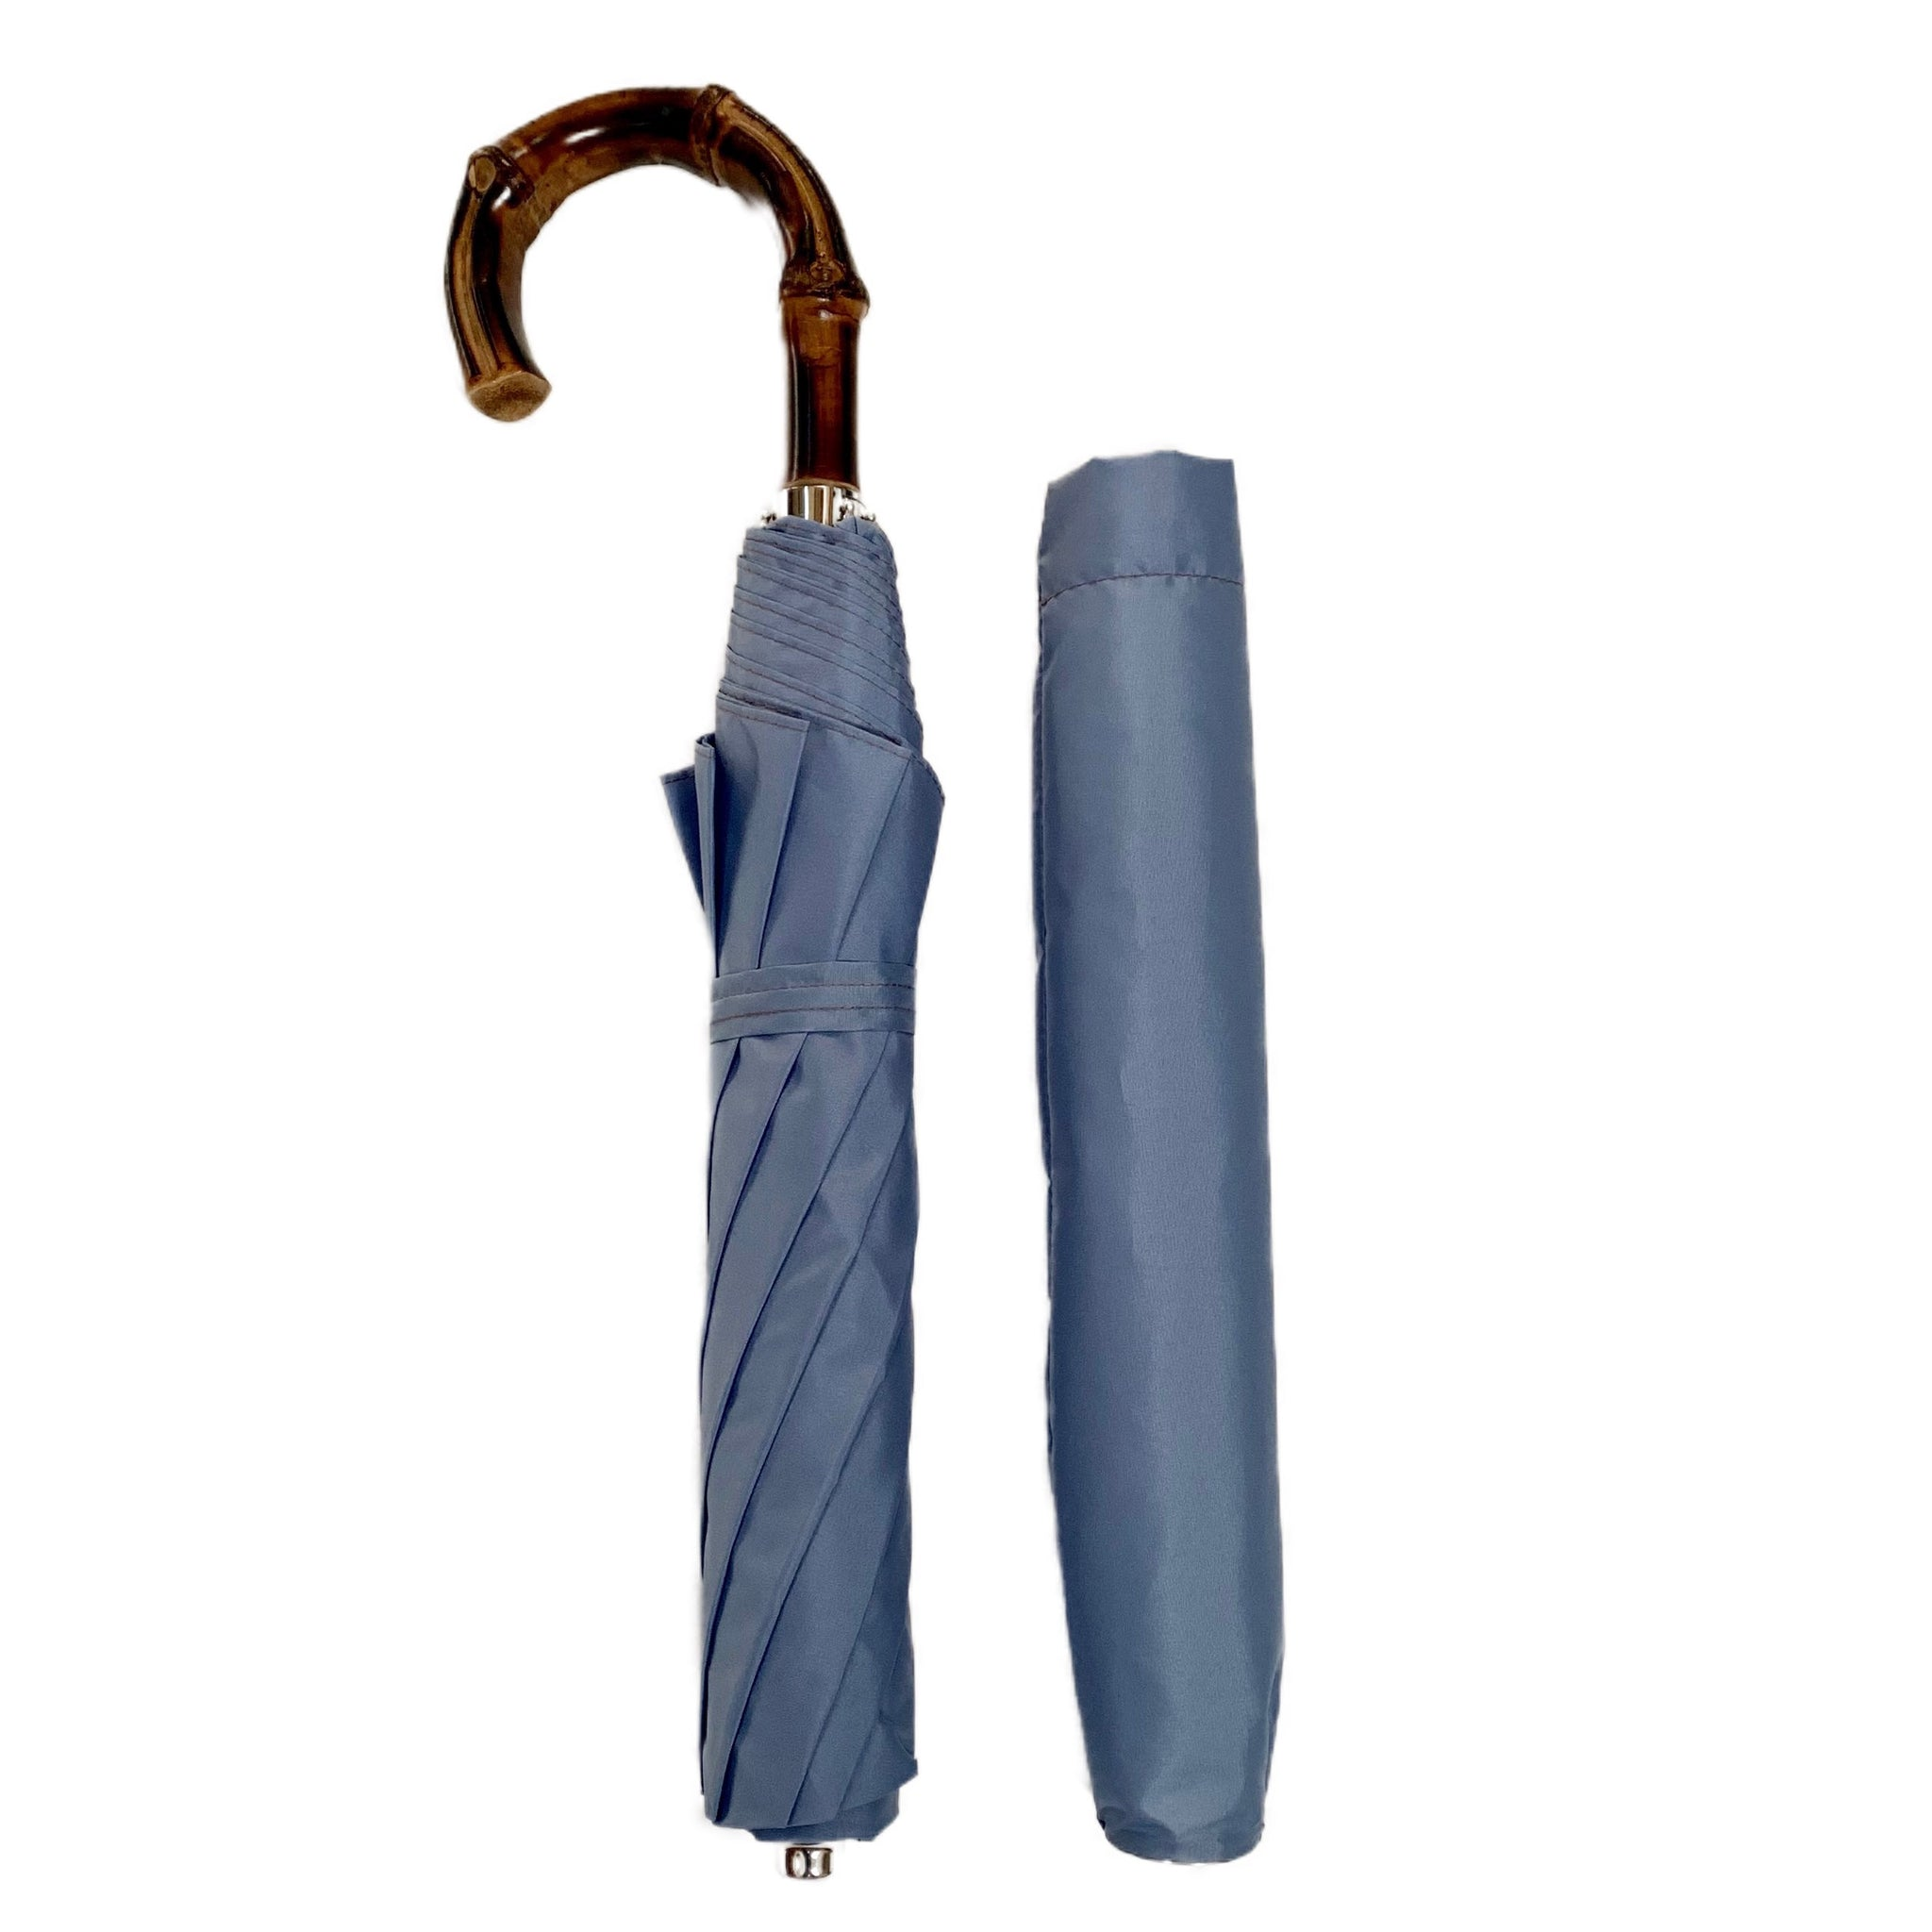 Bamboo Handled Umbrella in Robin Blue